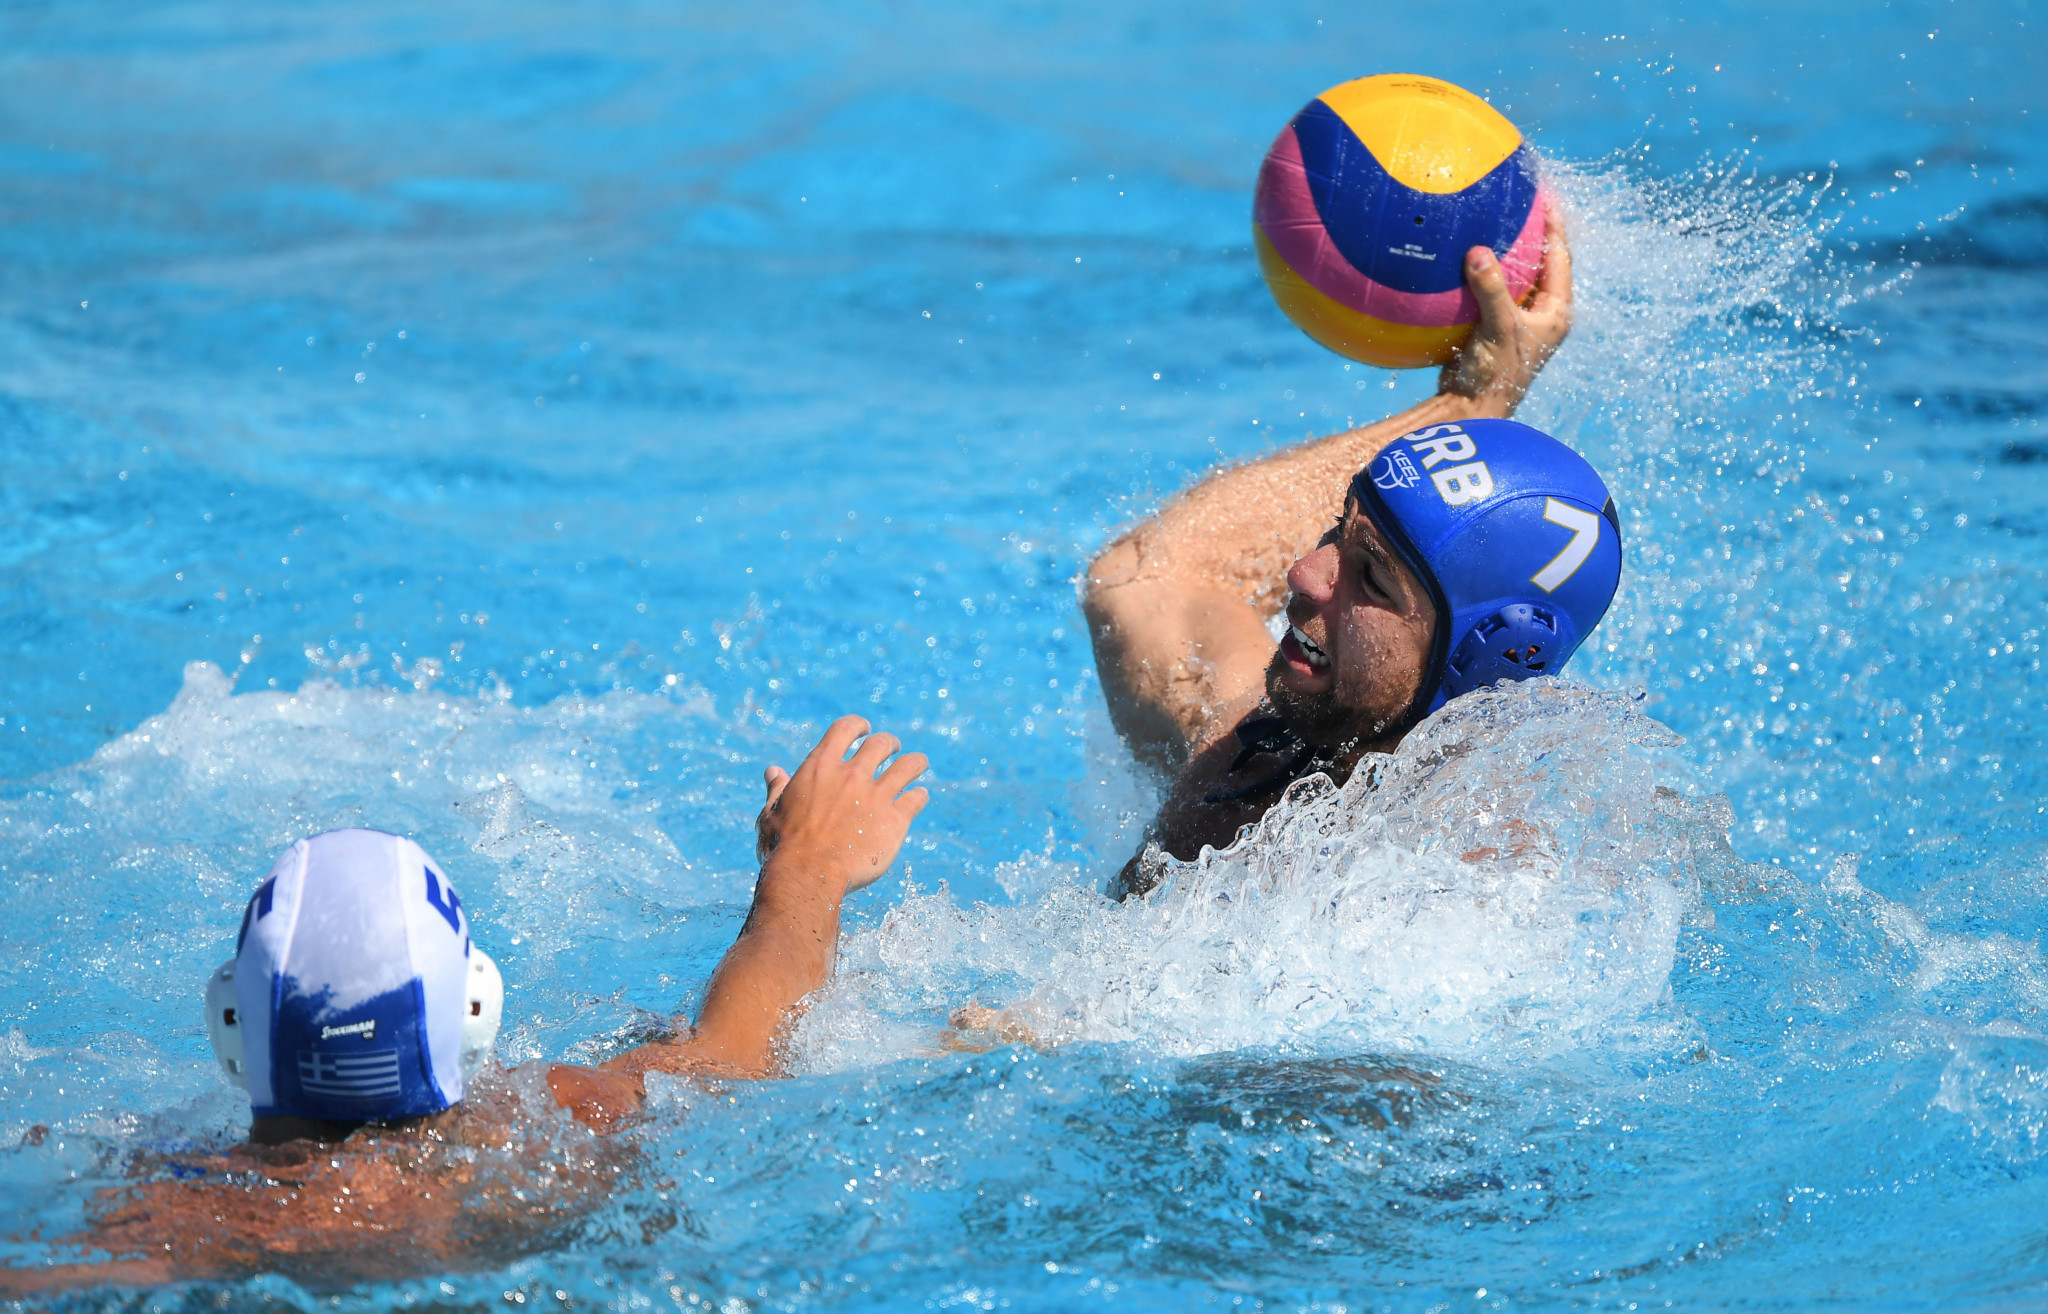 Serbia have won the Men's Water Polo World League 12 times but have already been knocked out of the competition this year ©Getty Images